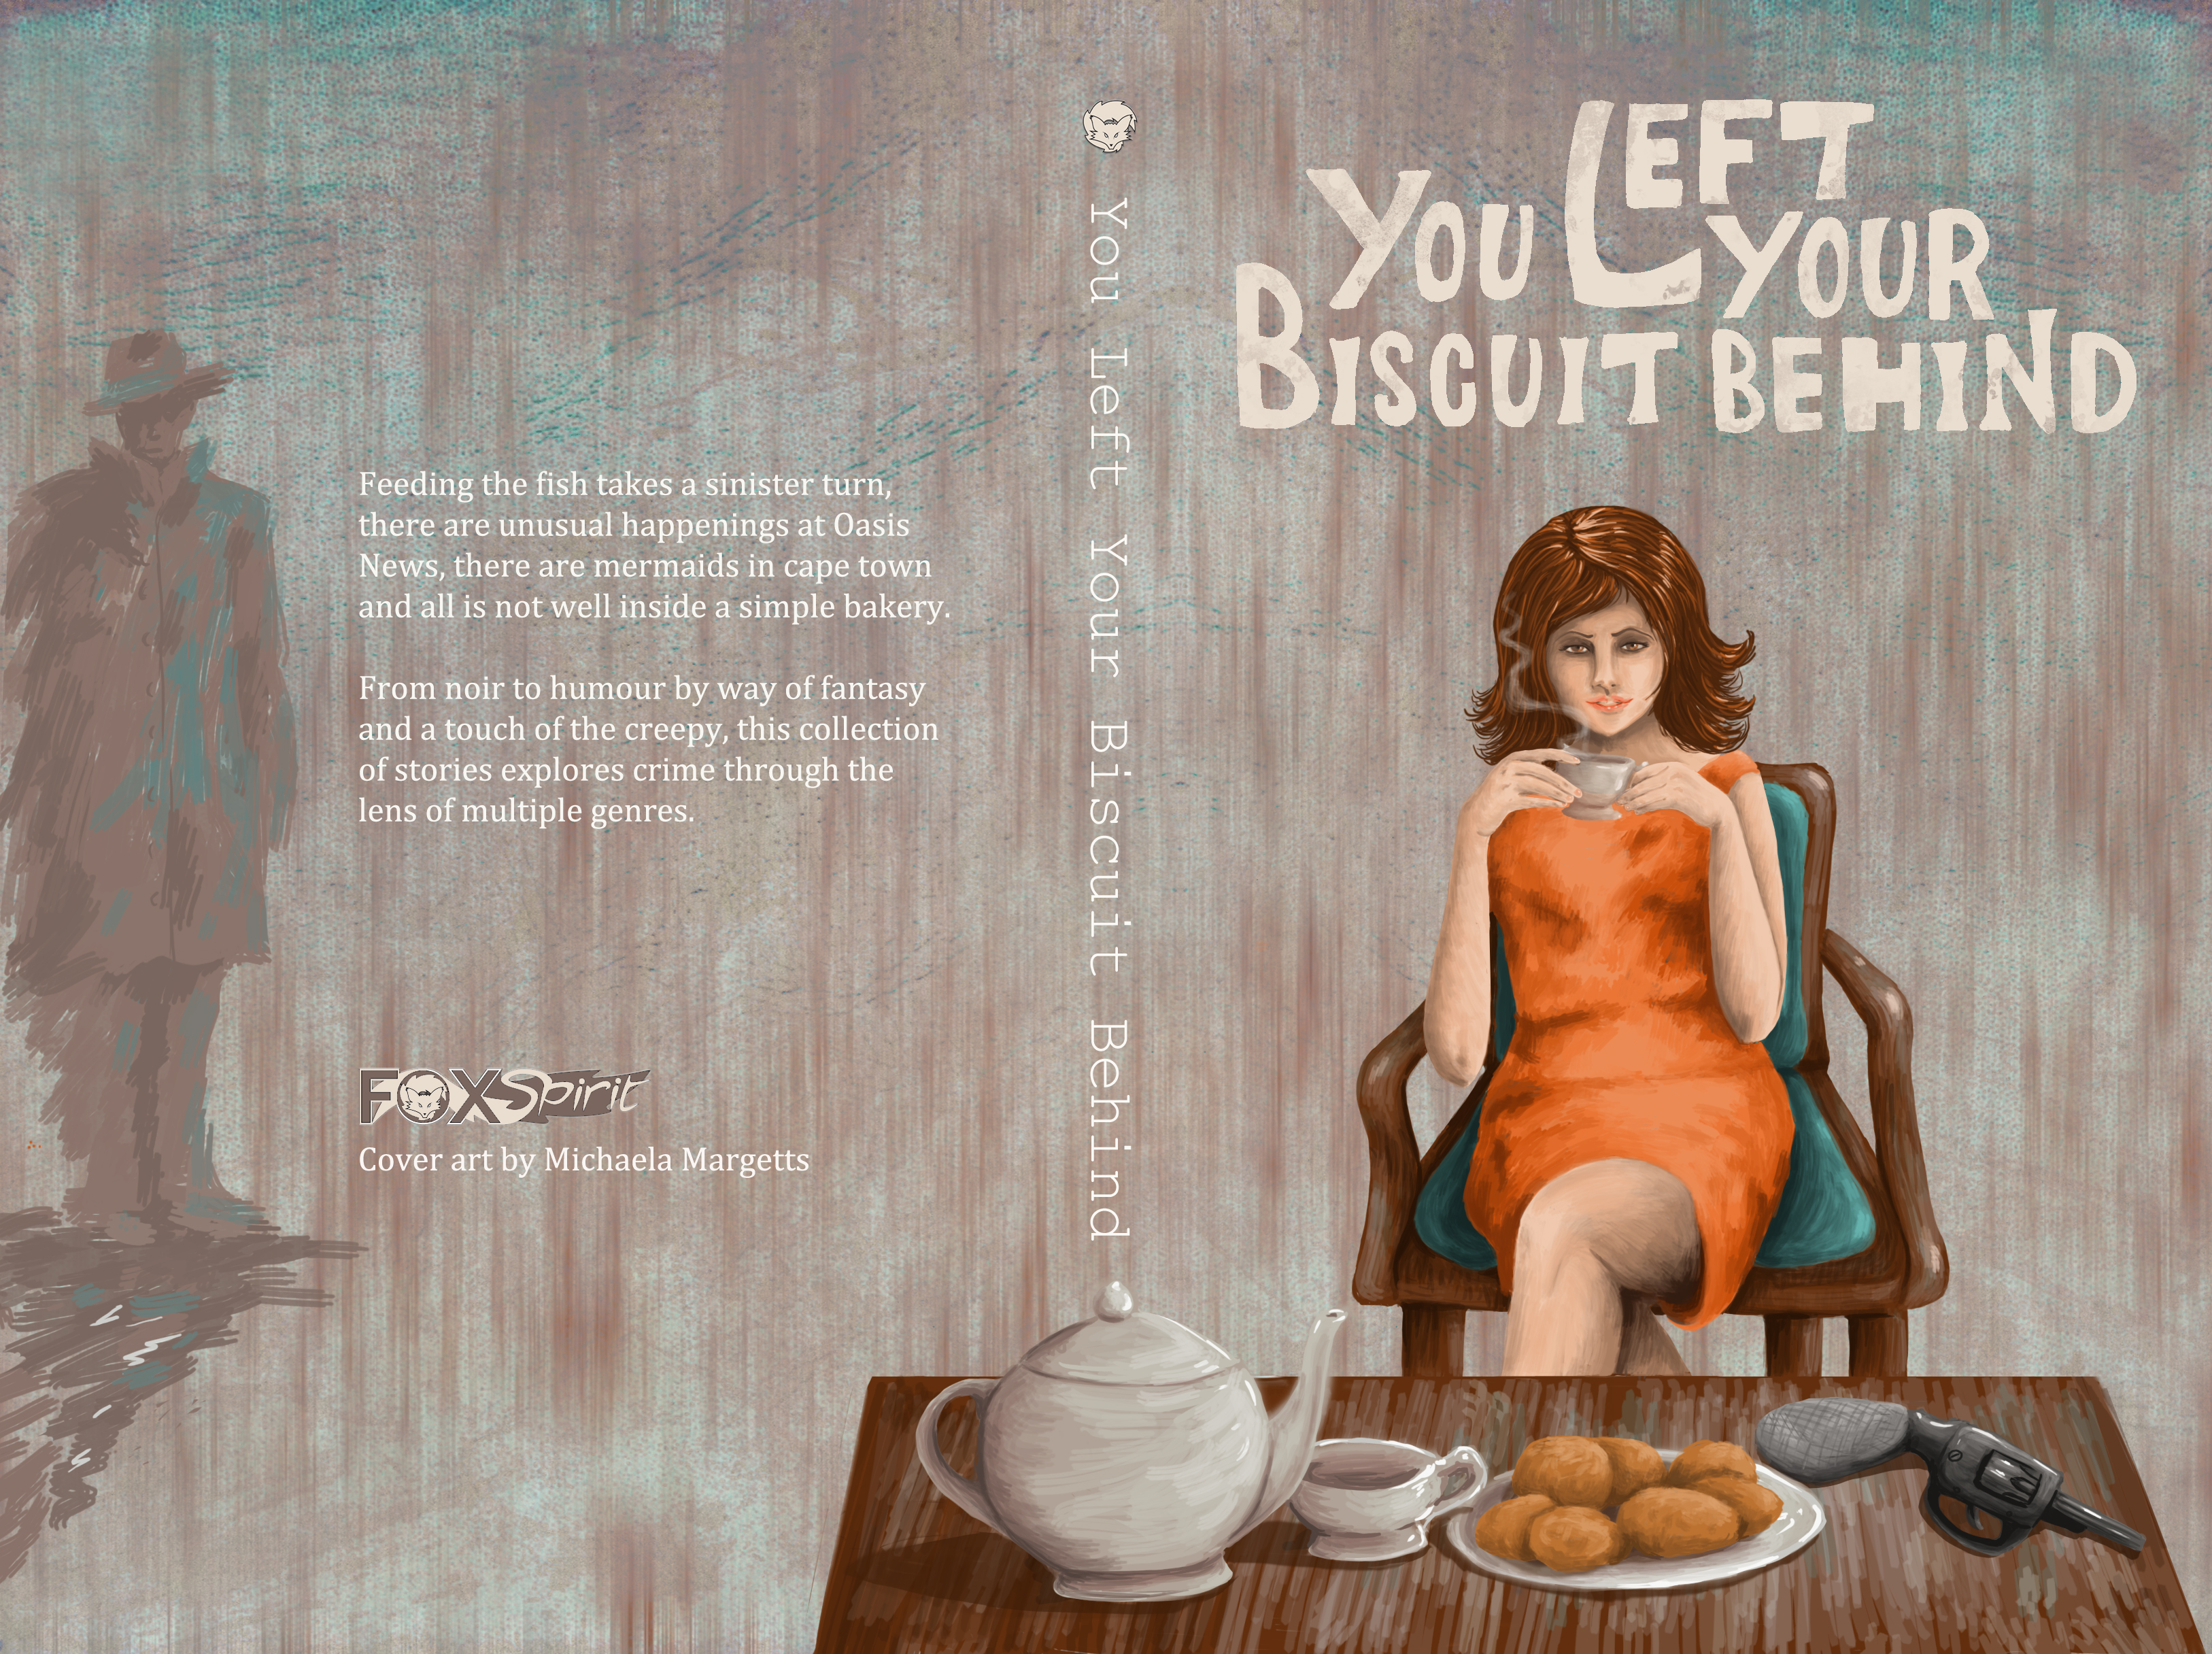 You Left Your Biscuit Behind edited by Adele Wearing